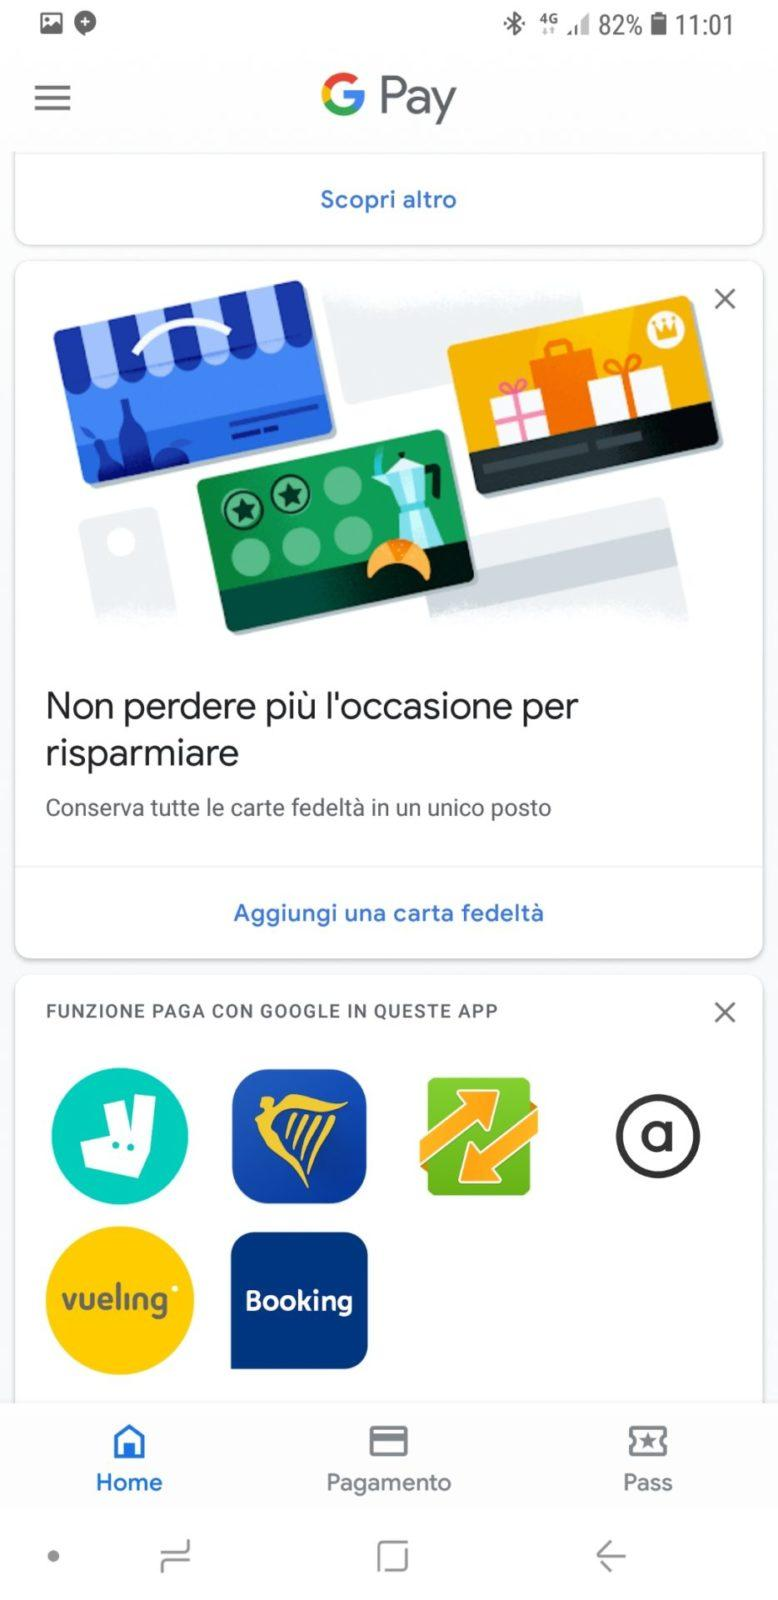 Home di Google Pay | Evosmart.it